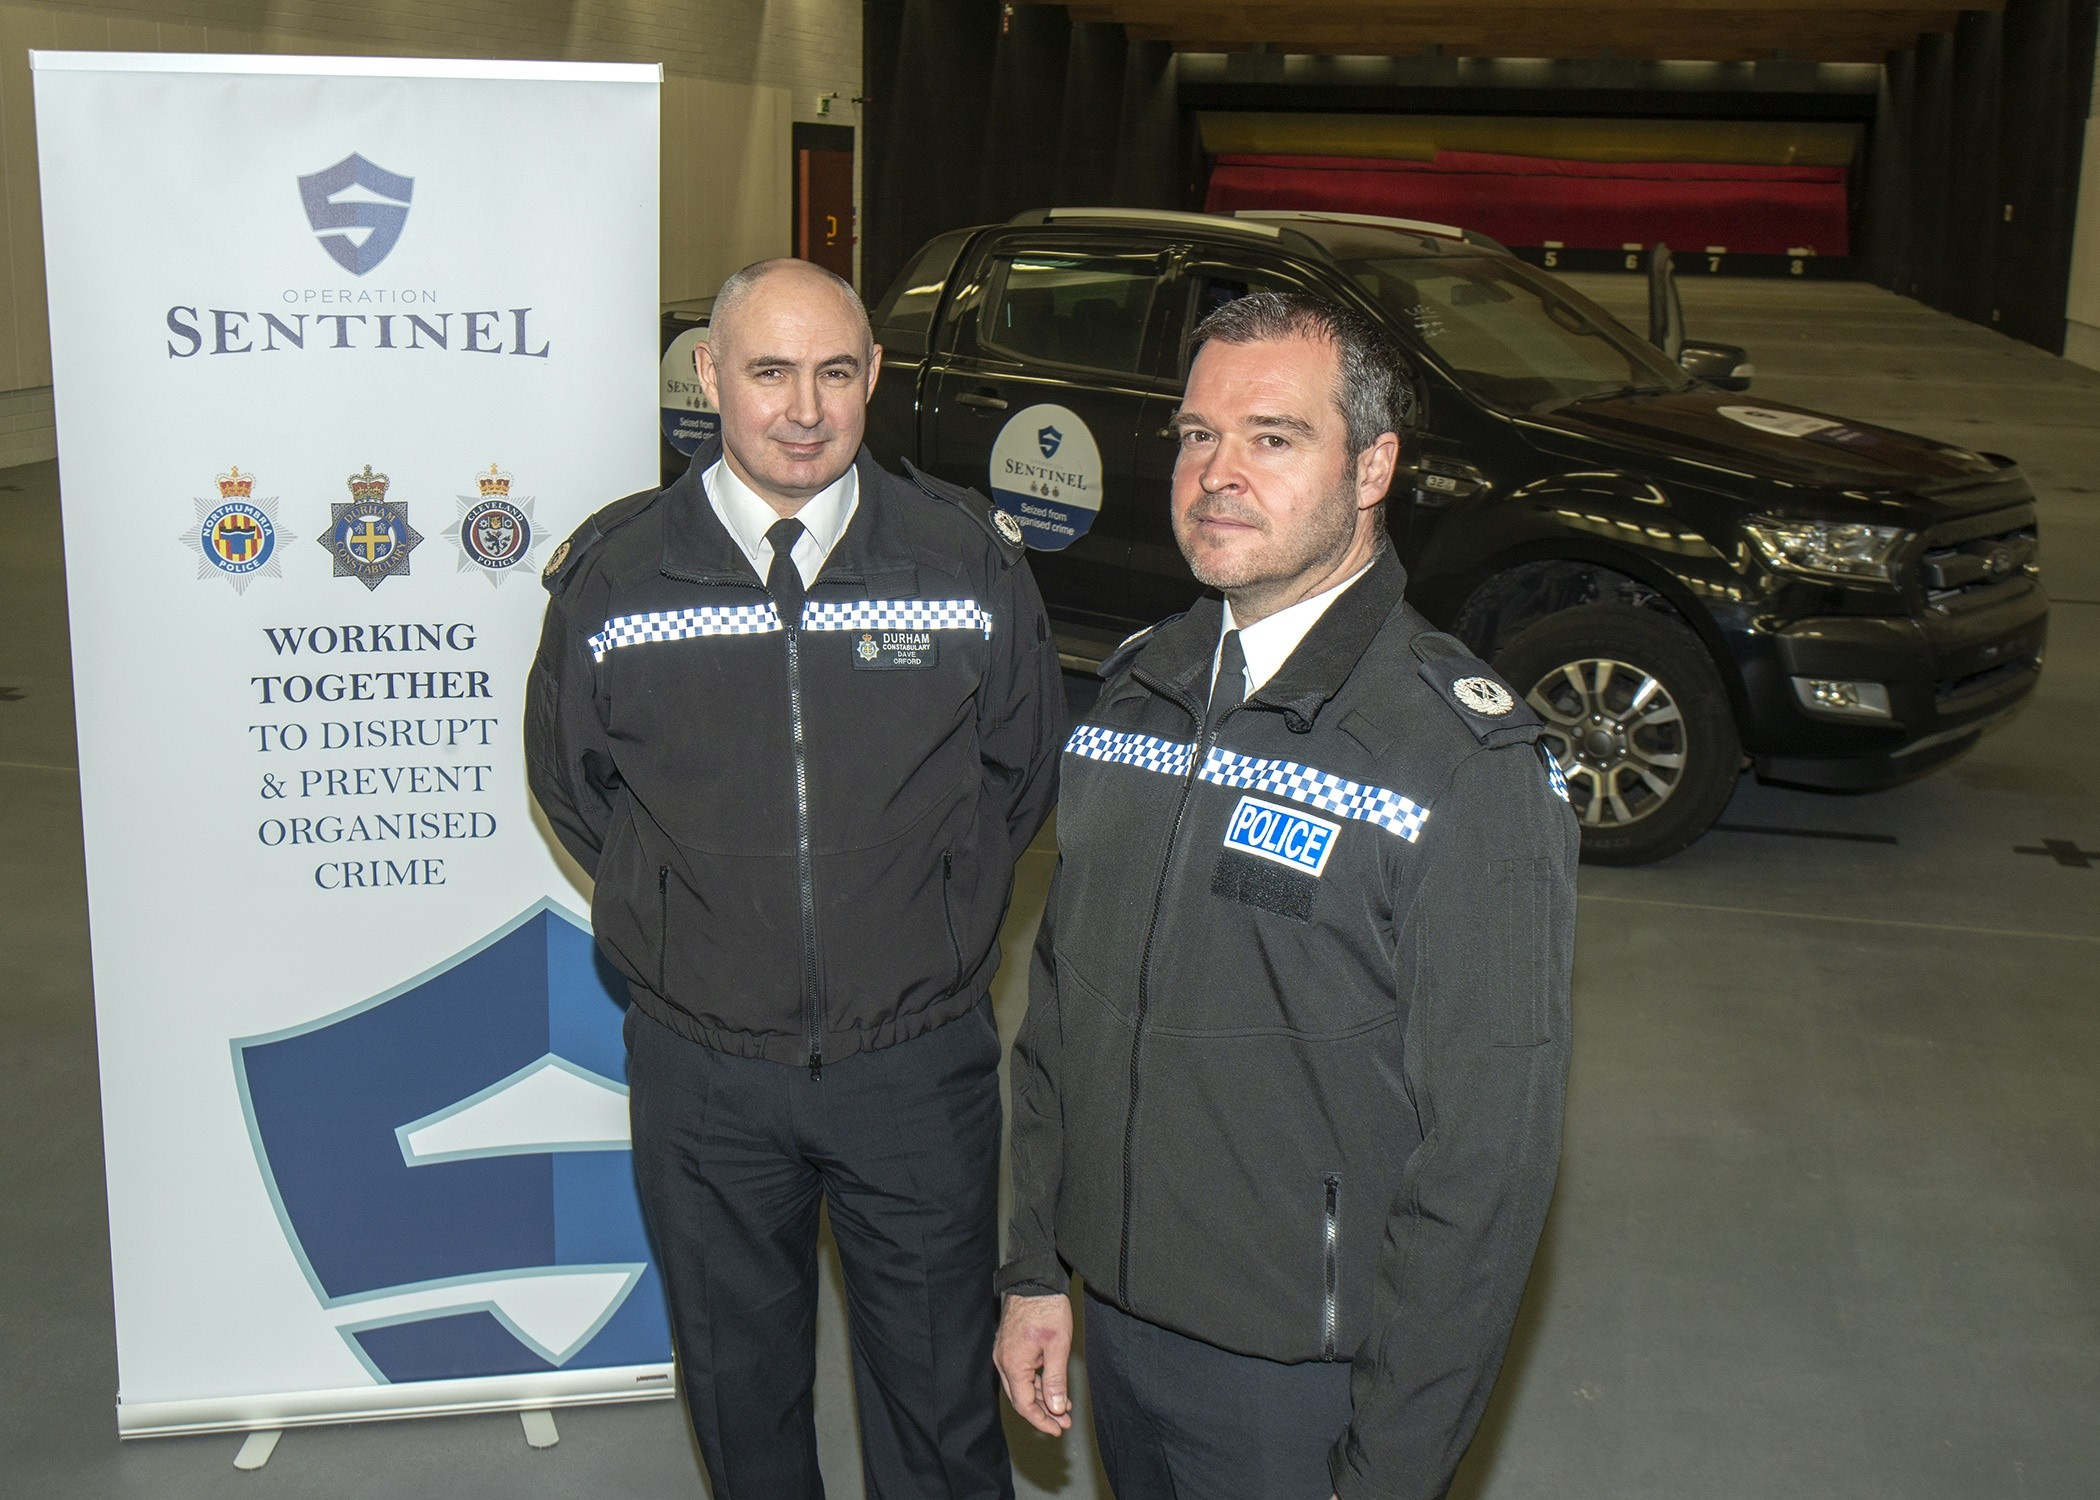 Police Launch Operation Sentinel